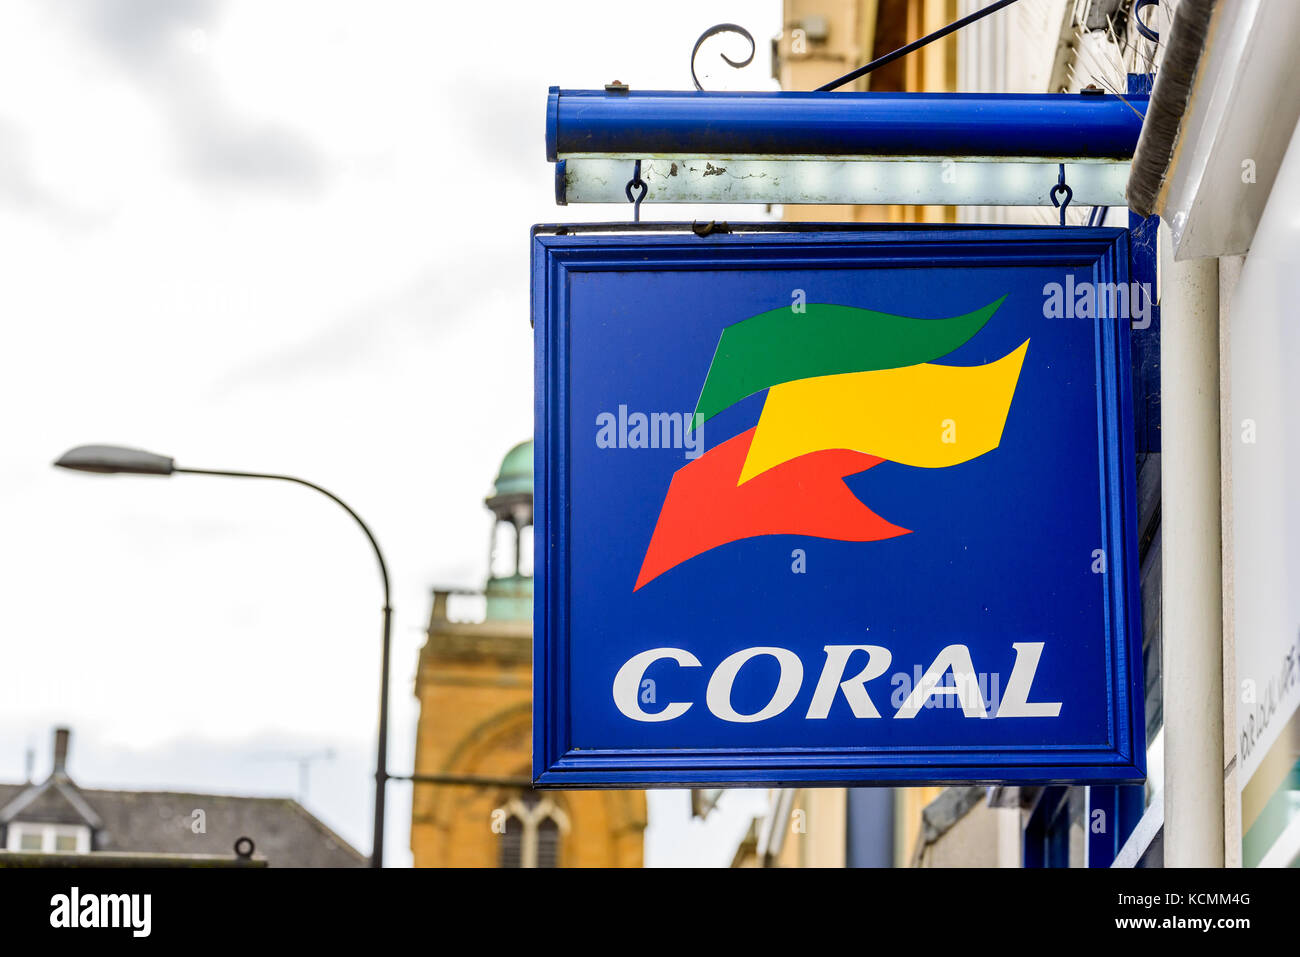 Northampton UK October 5, 2017: Coral betting logo sign in Northampton town centre. - Stock Image